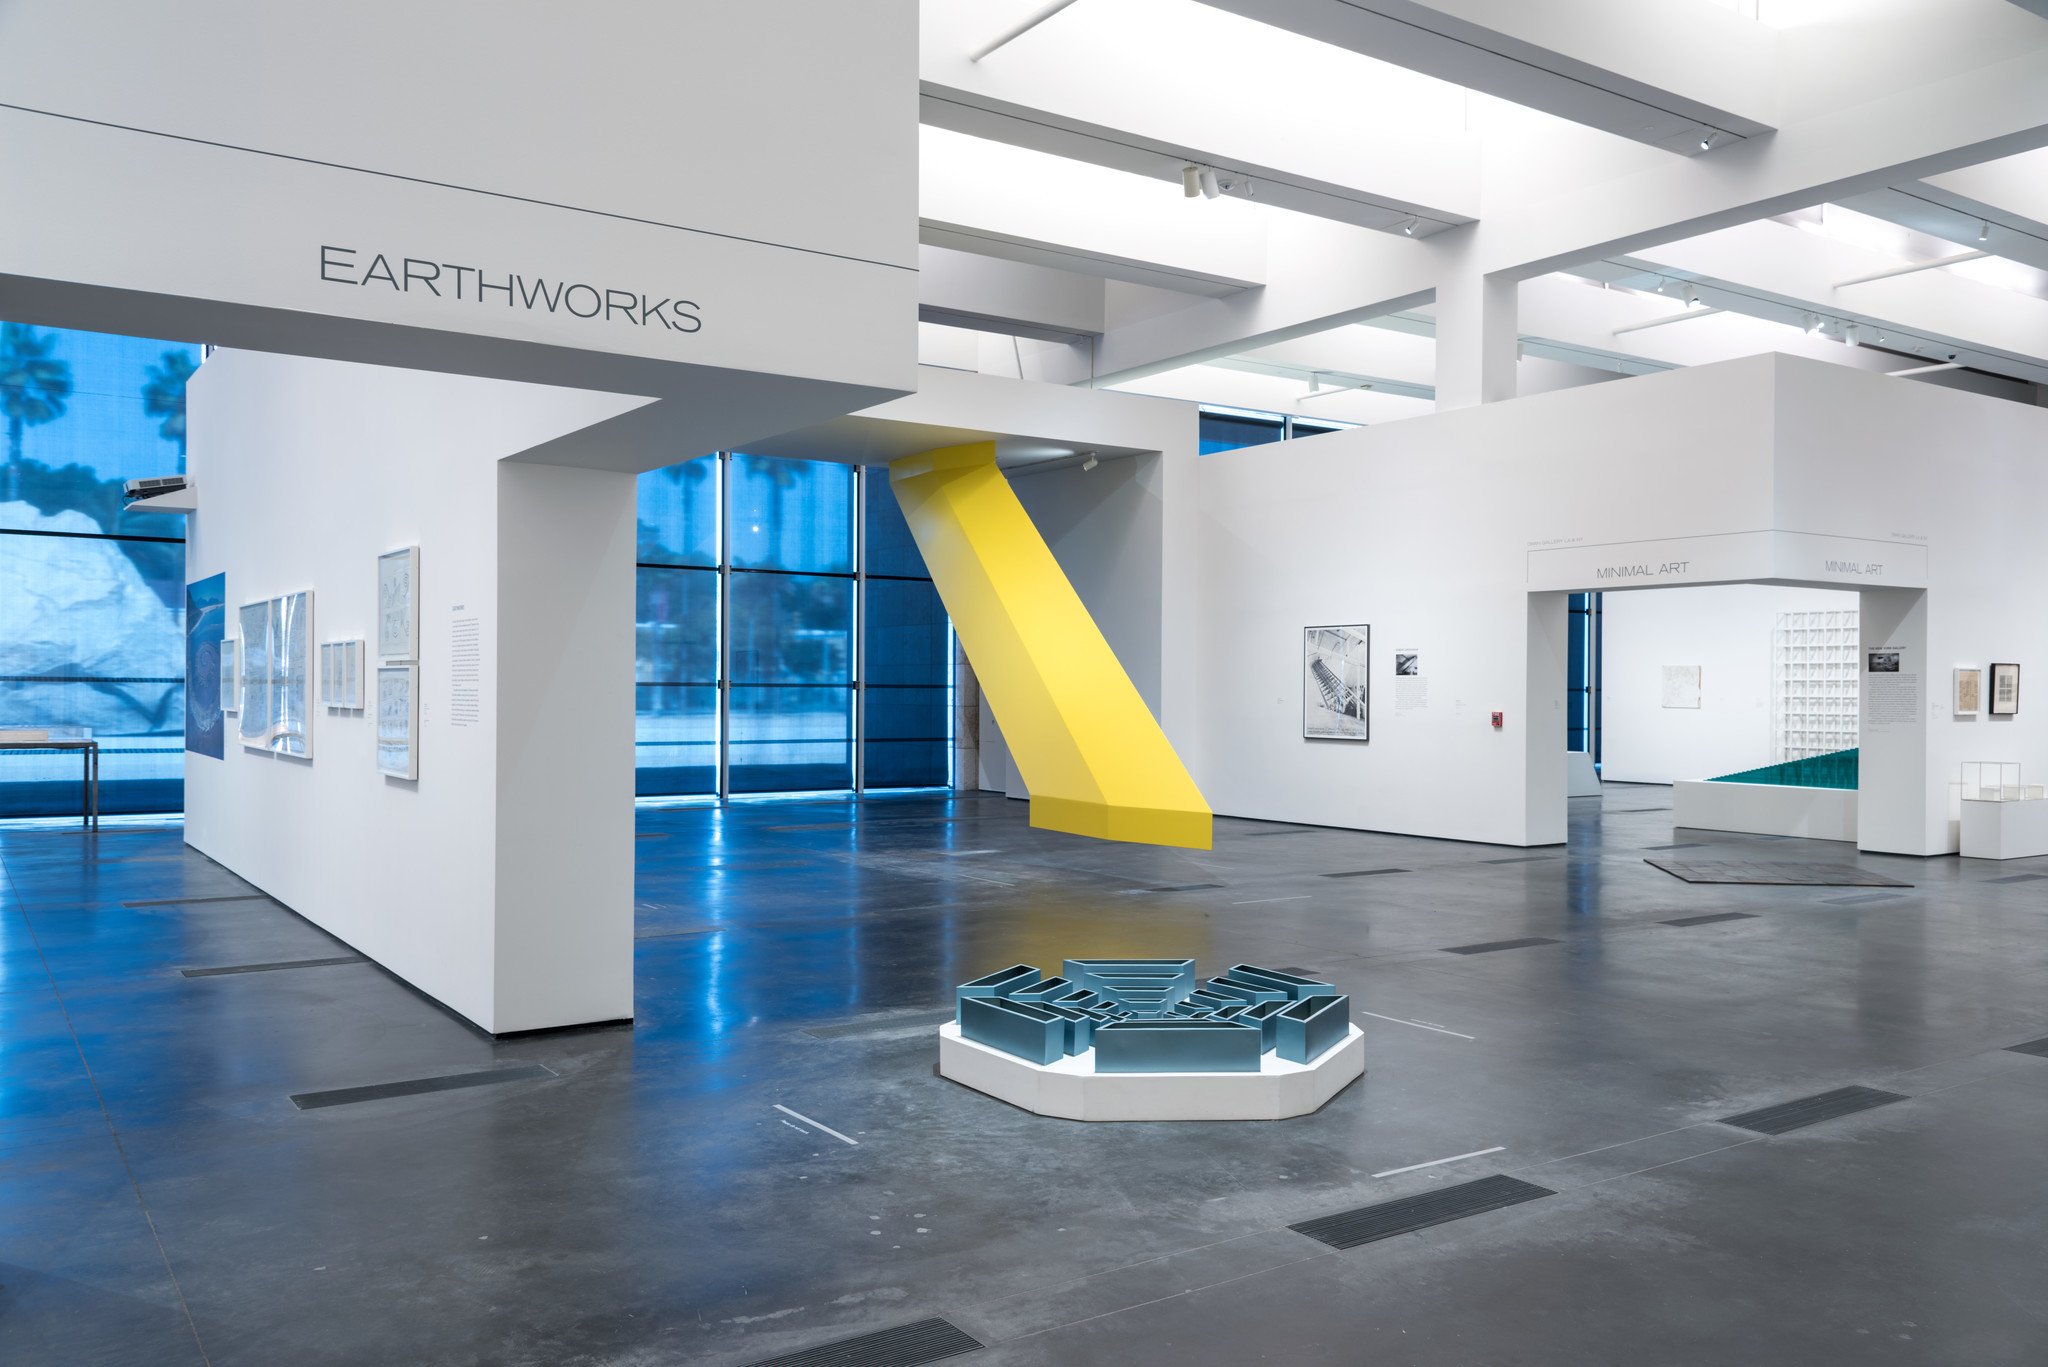 Except for Robert Grosvenor's yellow sculpture, color is in relatively short supply in the Dwan exhibition.